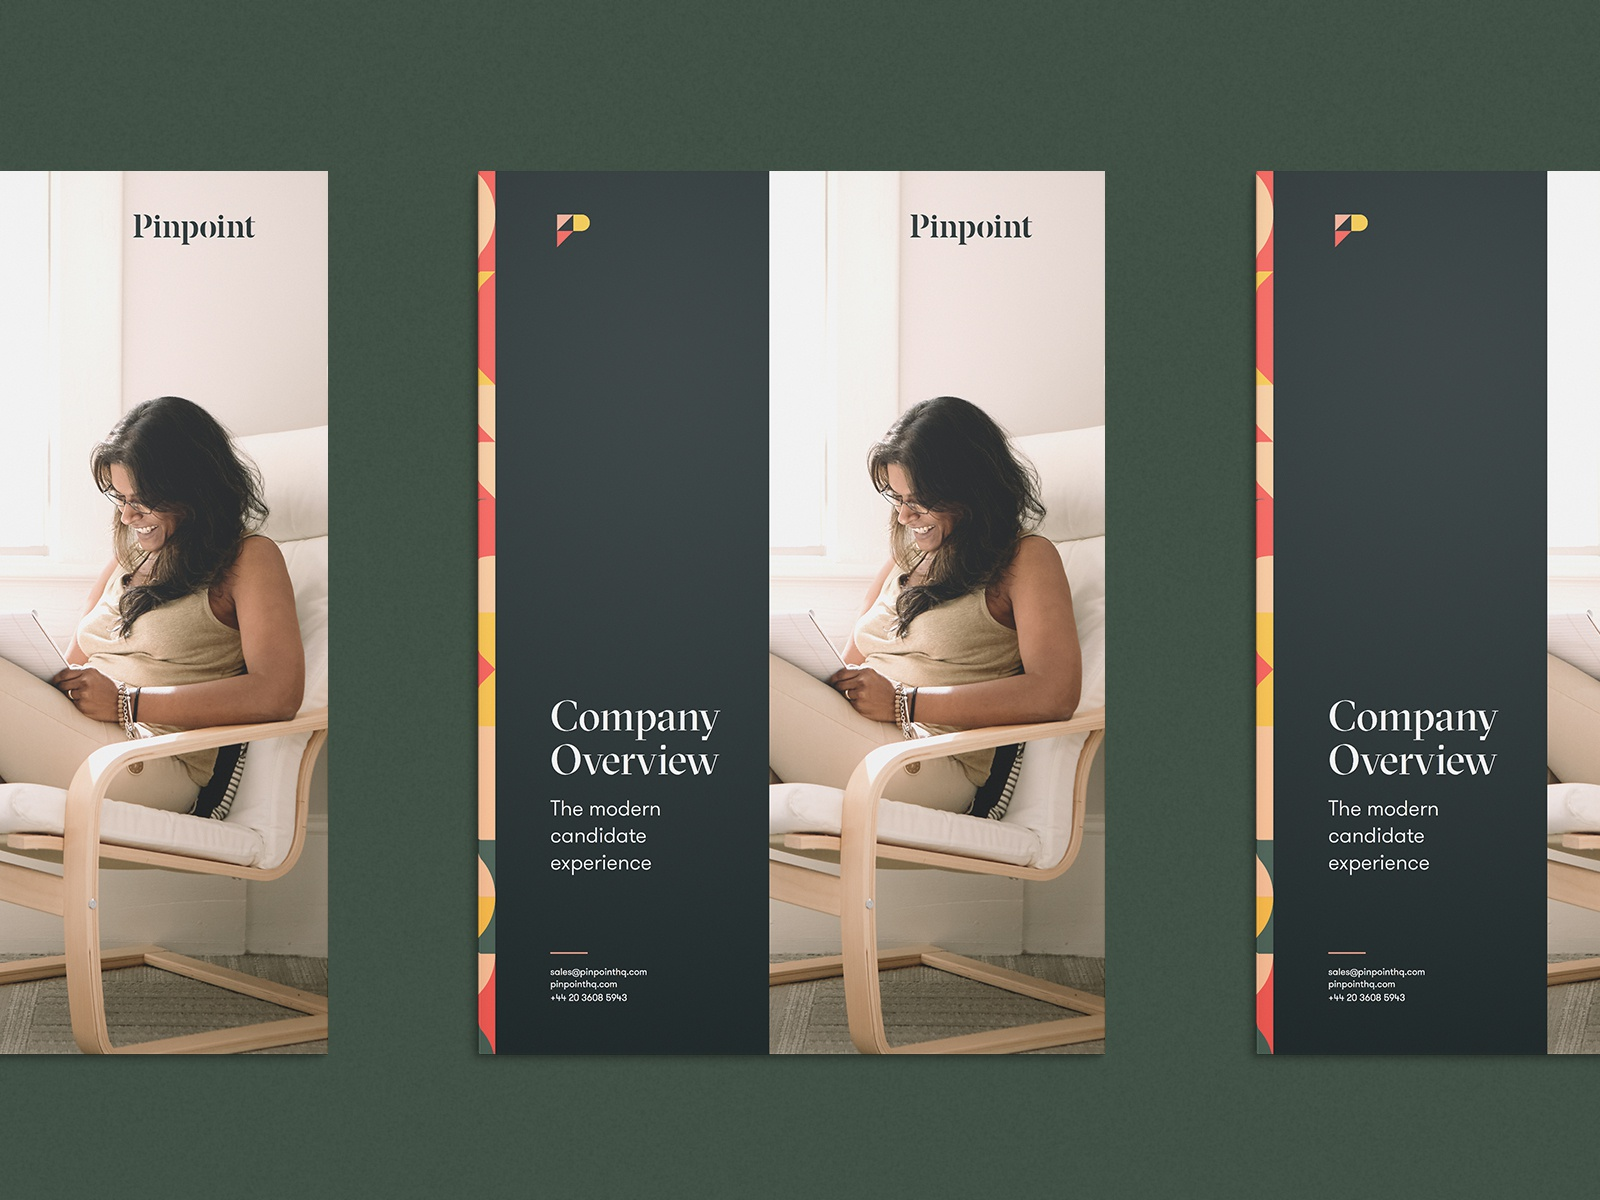 Pinpoint covers